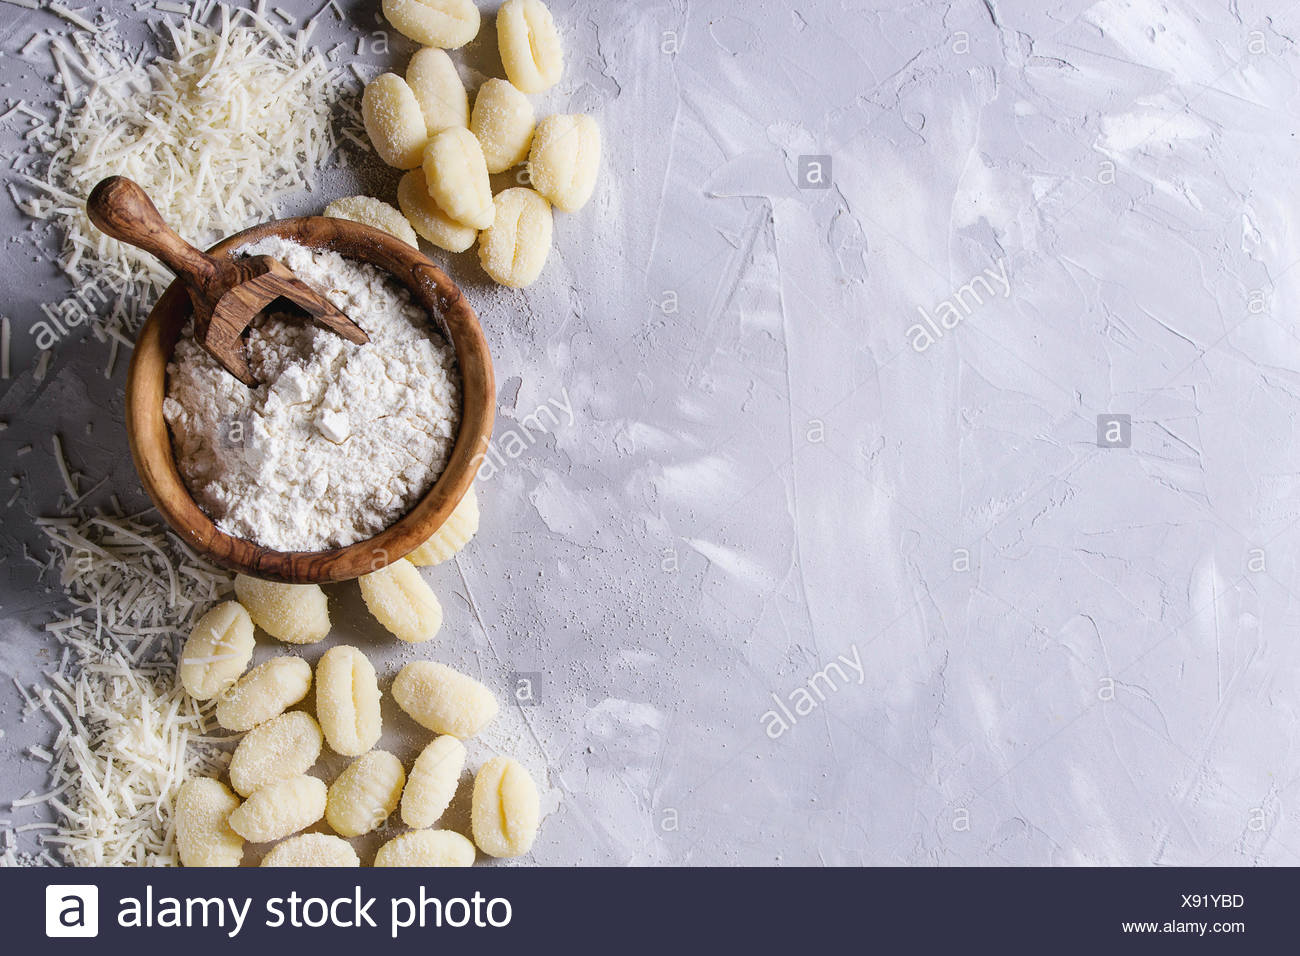 Raw uncooked potato gnocchi with olive wood bowl of flour, grated parmesan cheese over gray concrete background. Top view with copy space. Home cookin - Stock Image